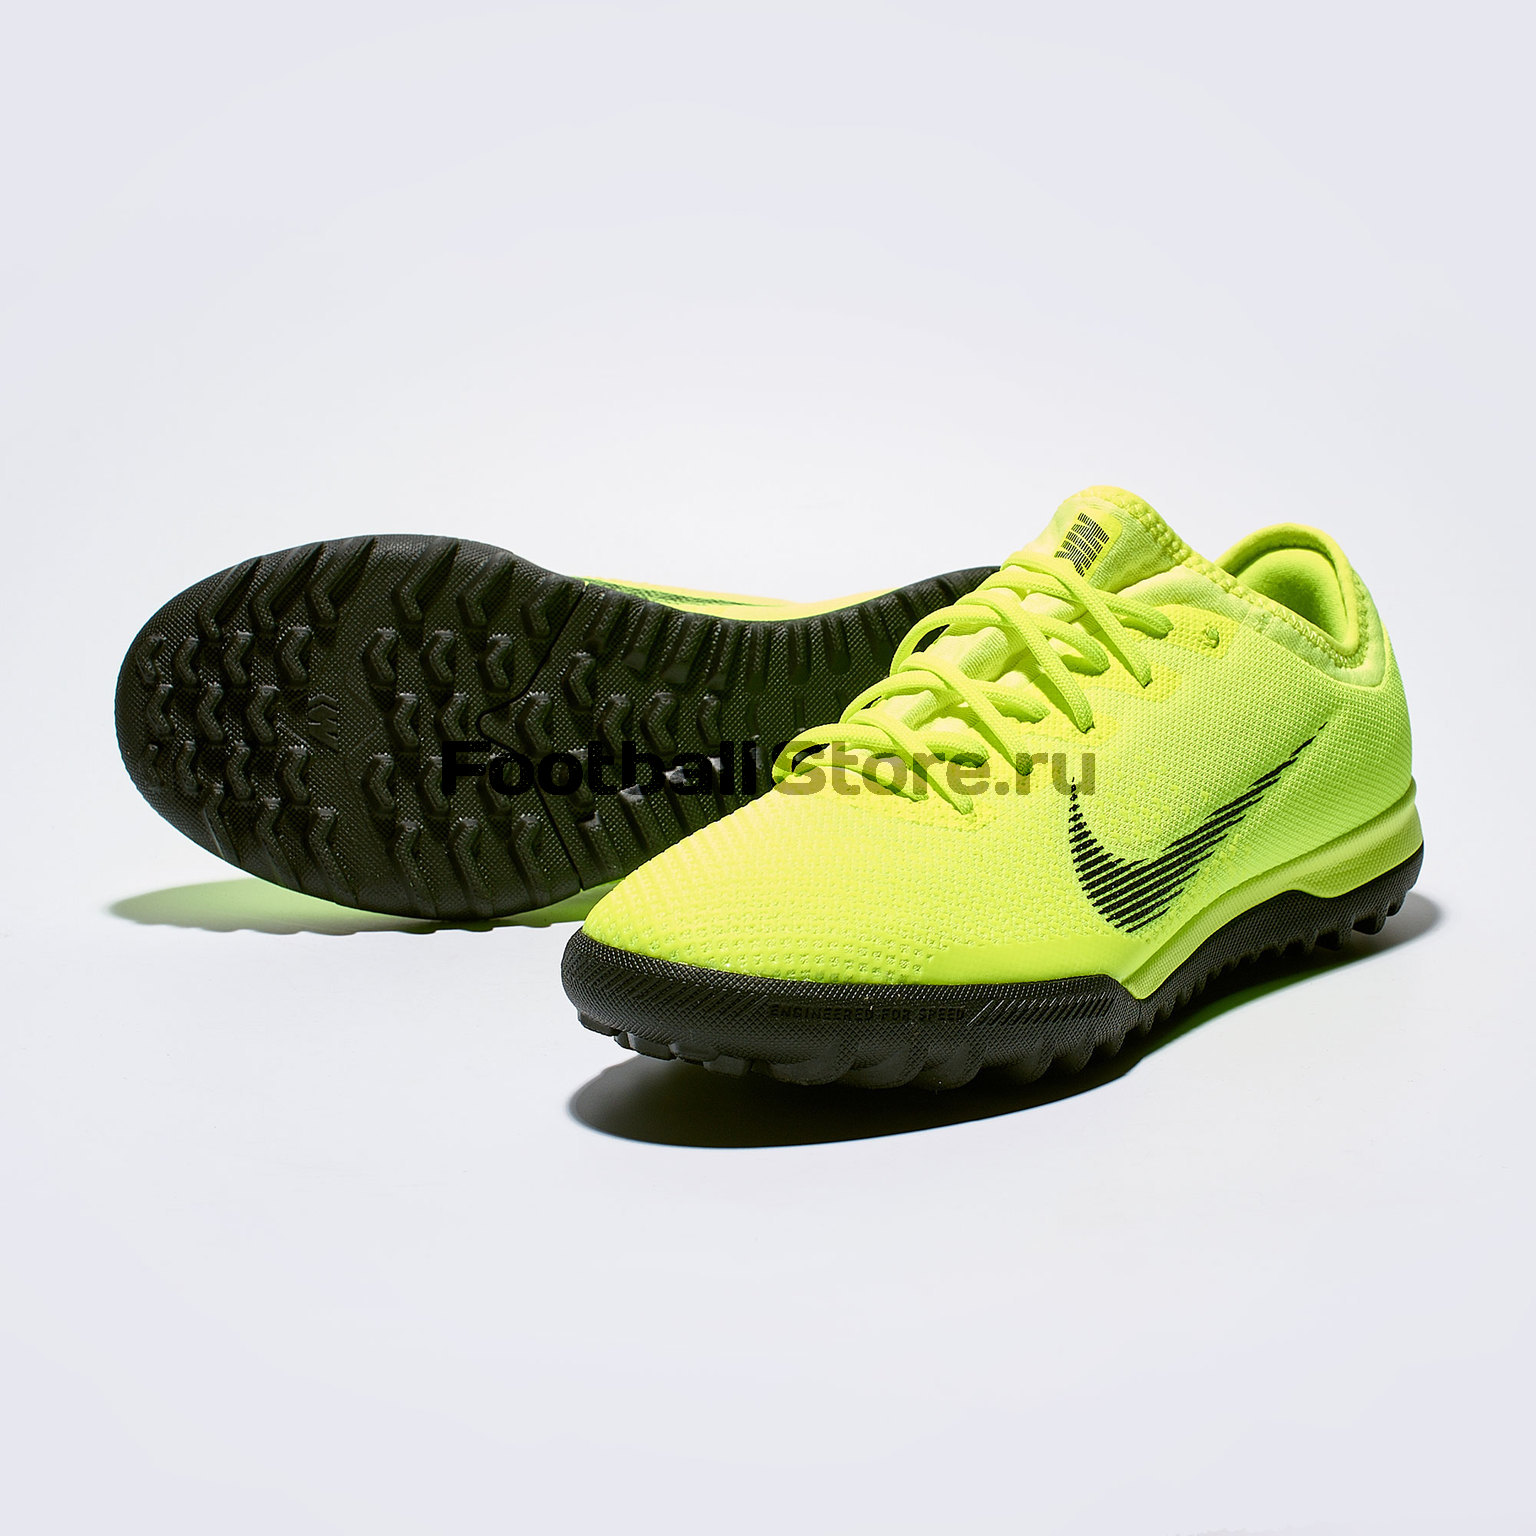 Шиповки Nike VaporX 12 Pro TF AH7388-701 original new arrival nike mercurial victory v tf men s light comfortable soccer shoes football sneakers